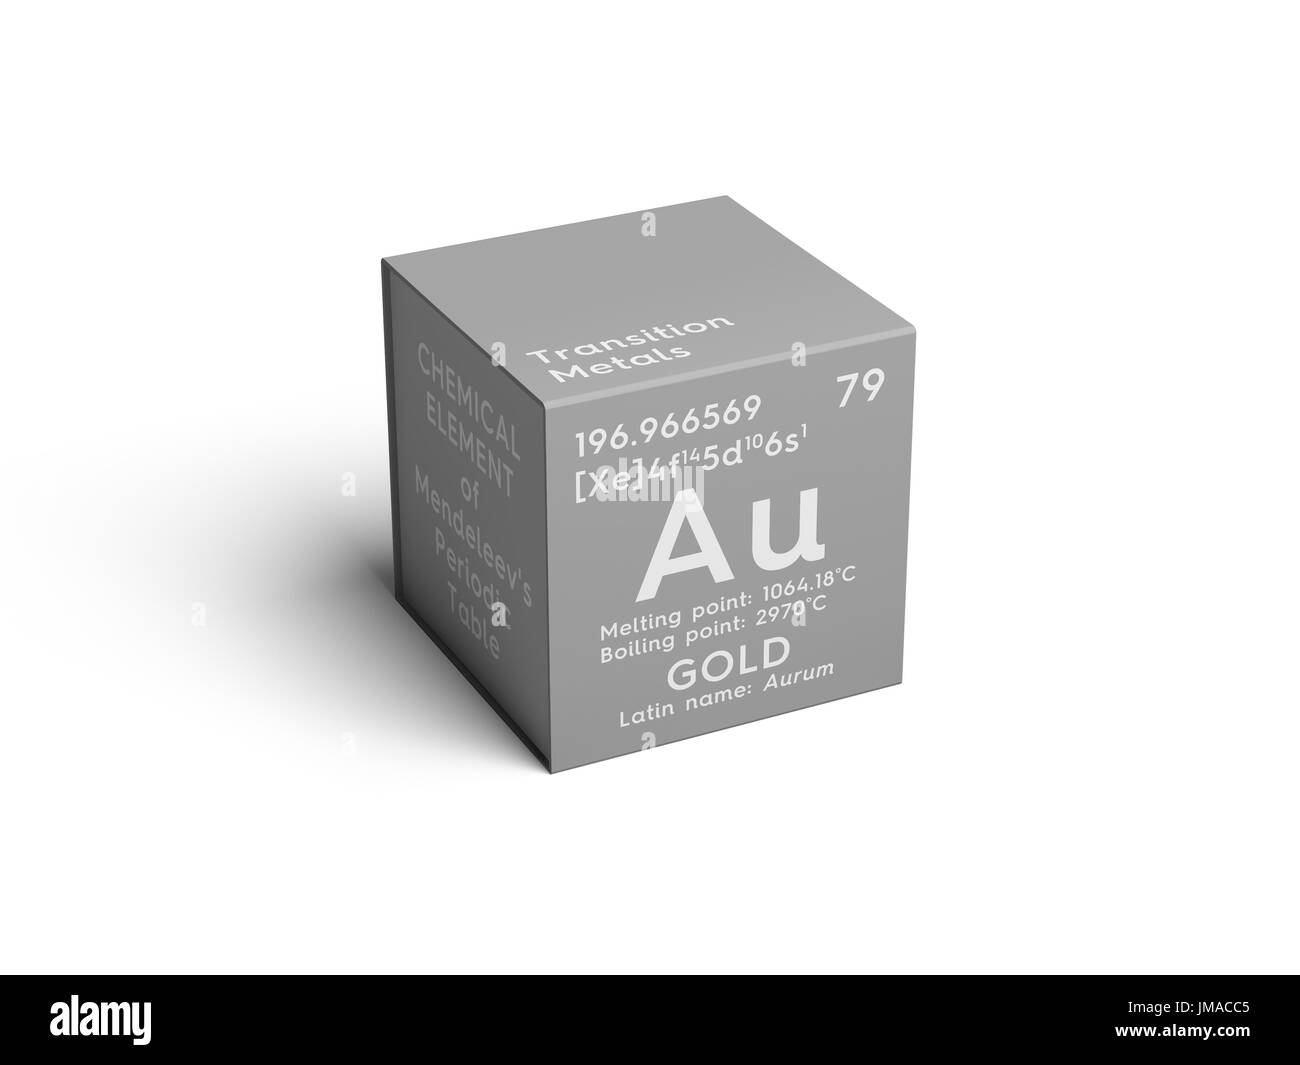 Gold aurum transition metals chemical element of mendeleevs gold aurum transition metals chemical element of mendeleevs periodic table gold in square cube creative concept buycottarizona Image collections